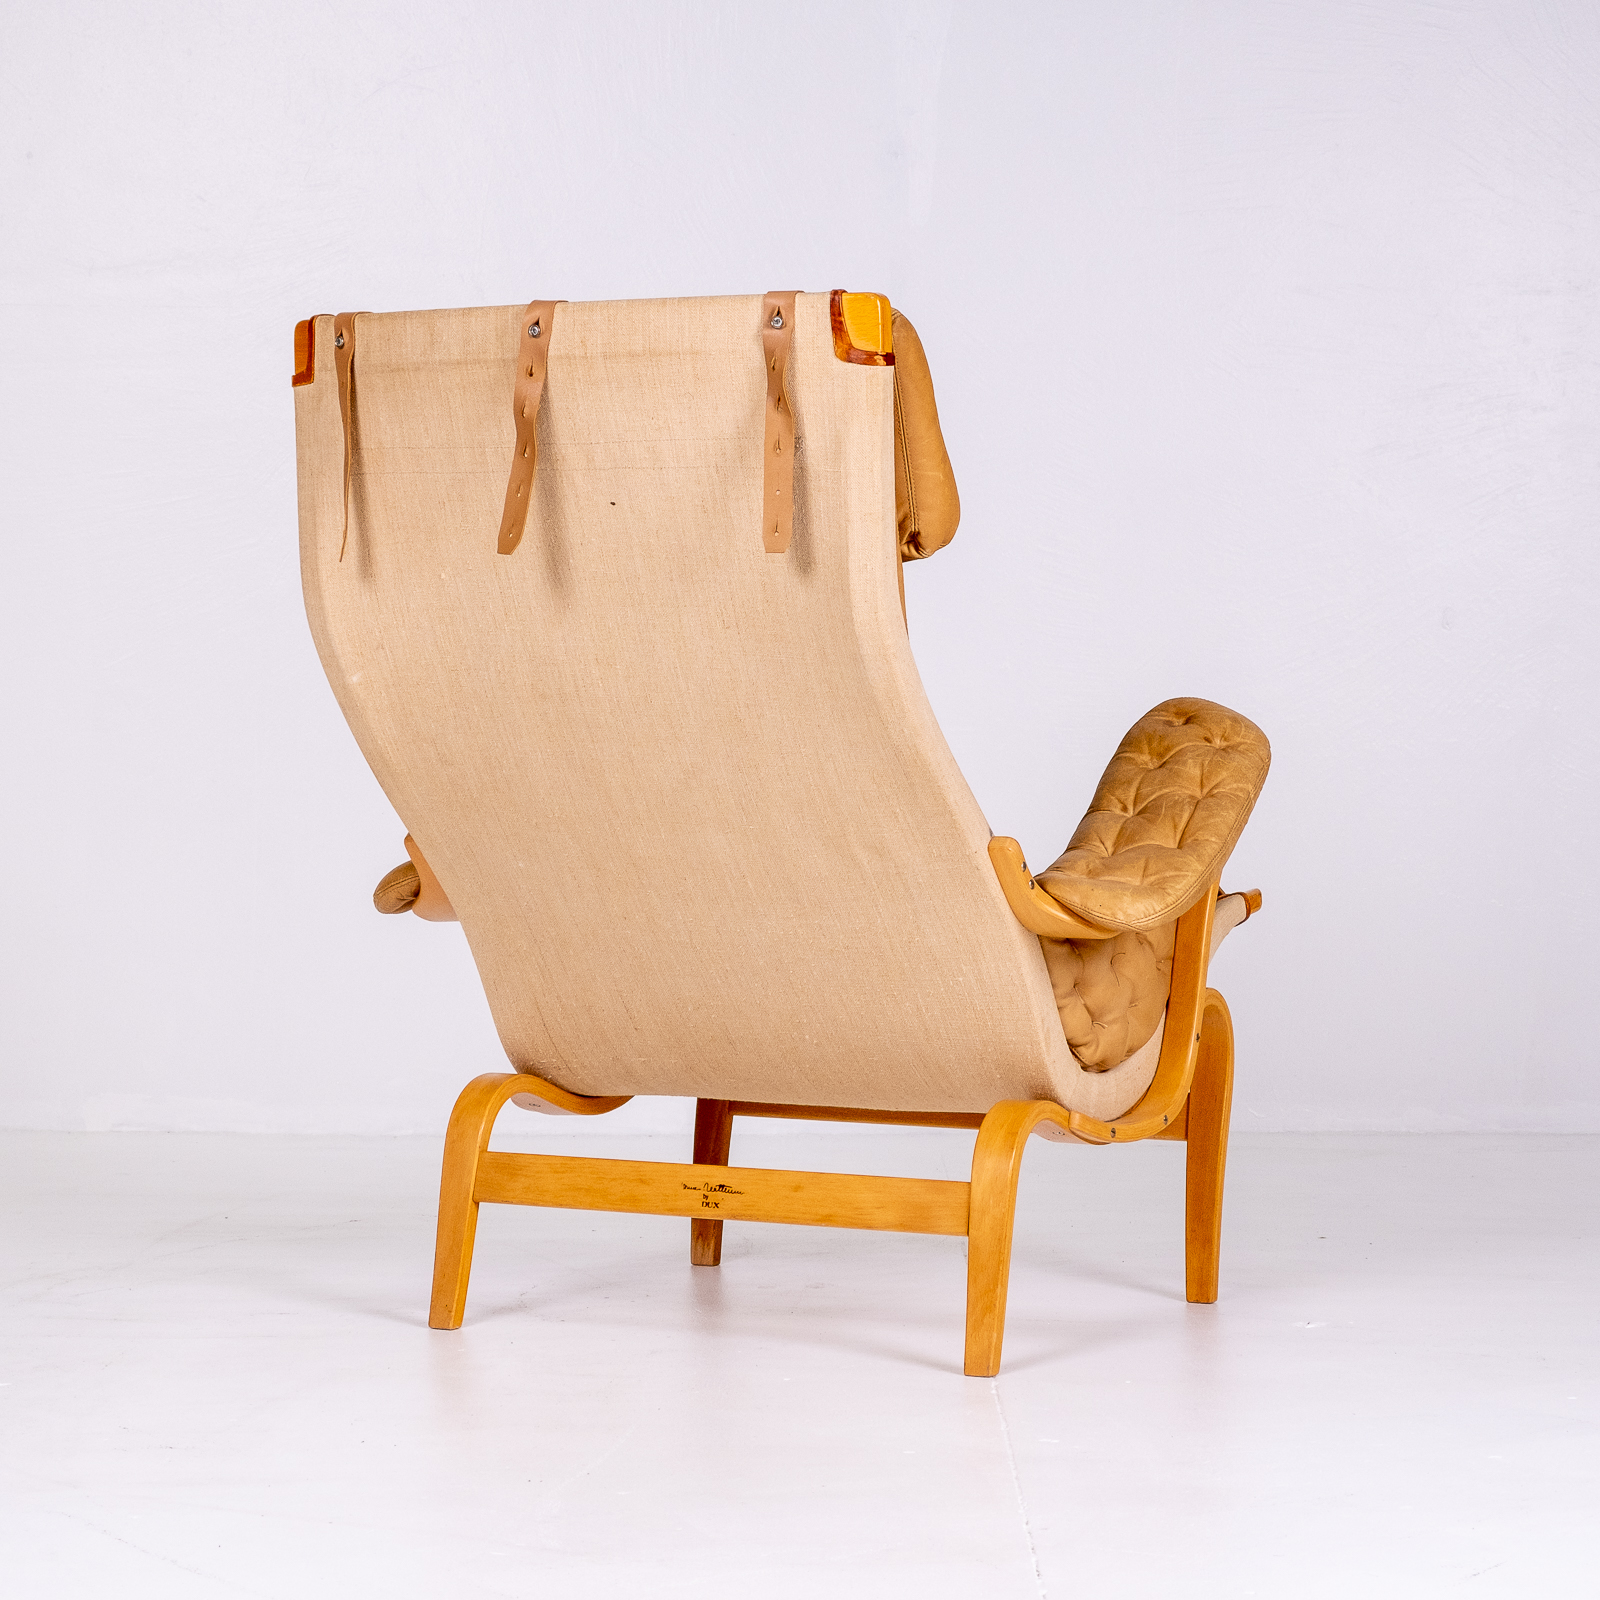 Pernilla 69 Chair By Bruno Mathsson For Dux, 1960s, Sweden 05